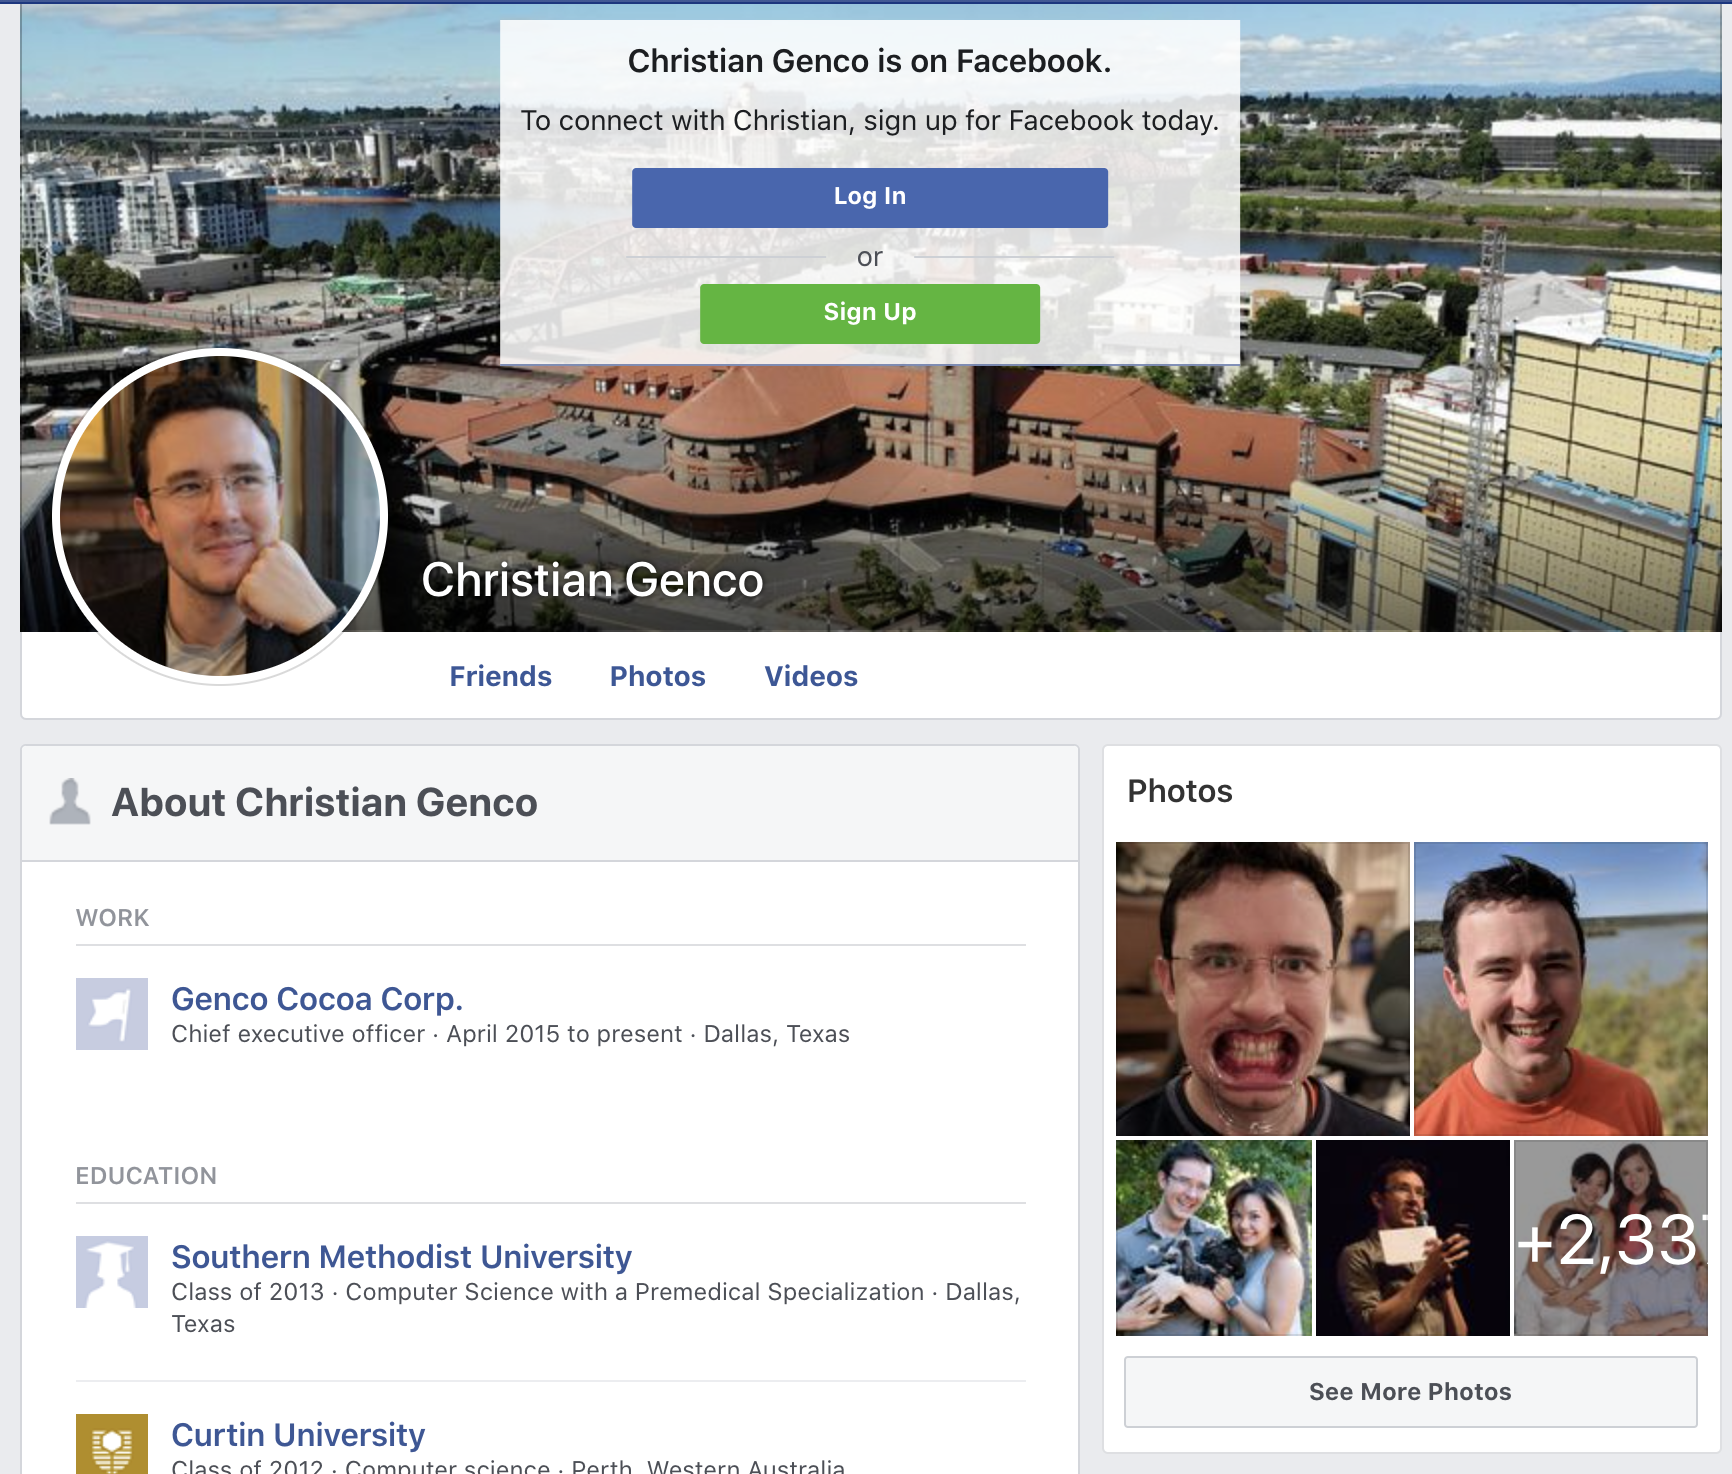 My public Facebook profile shows pictures of me with my ex wife and I can't change it